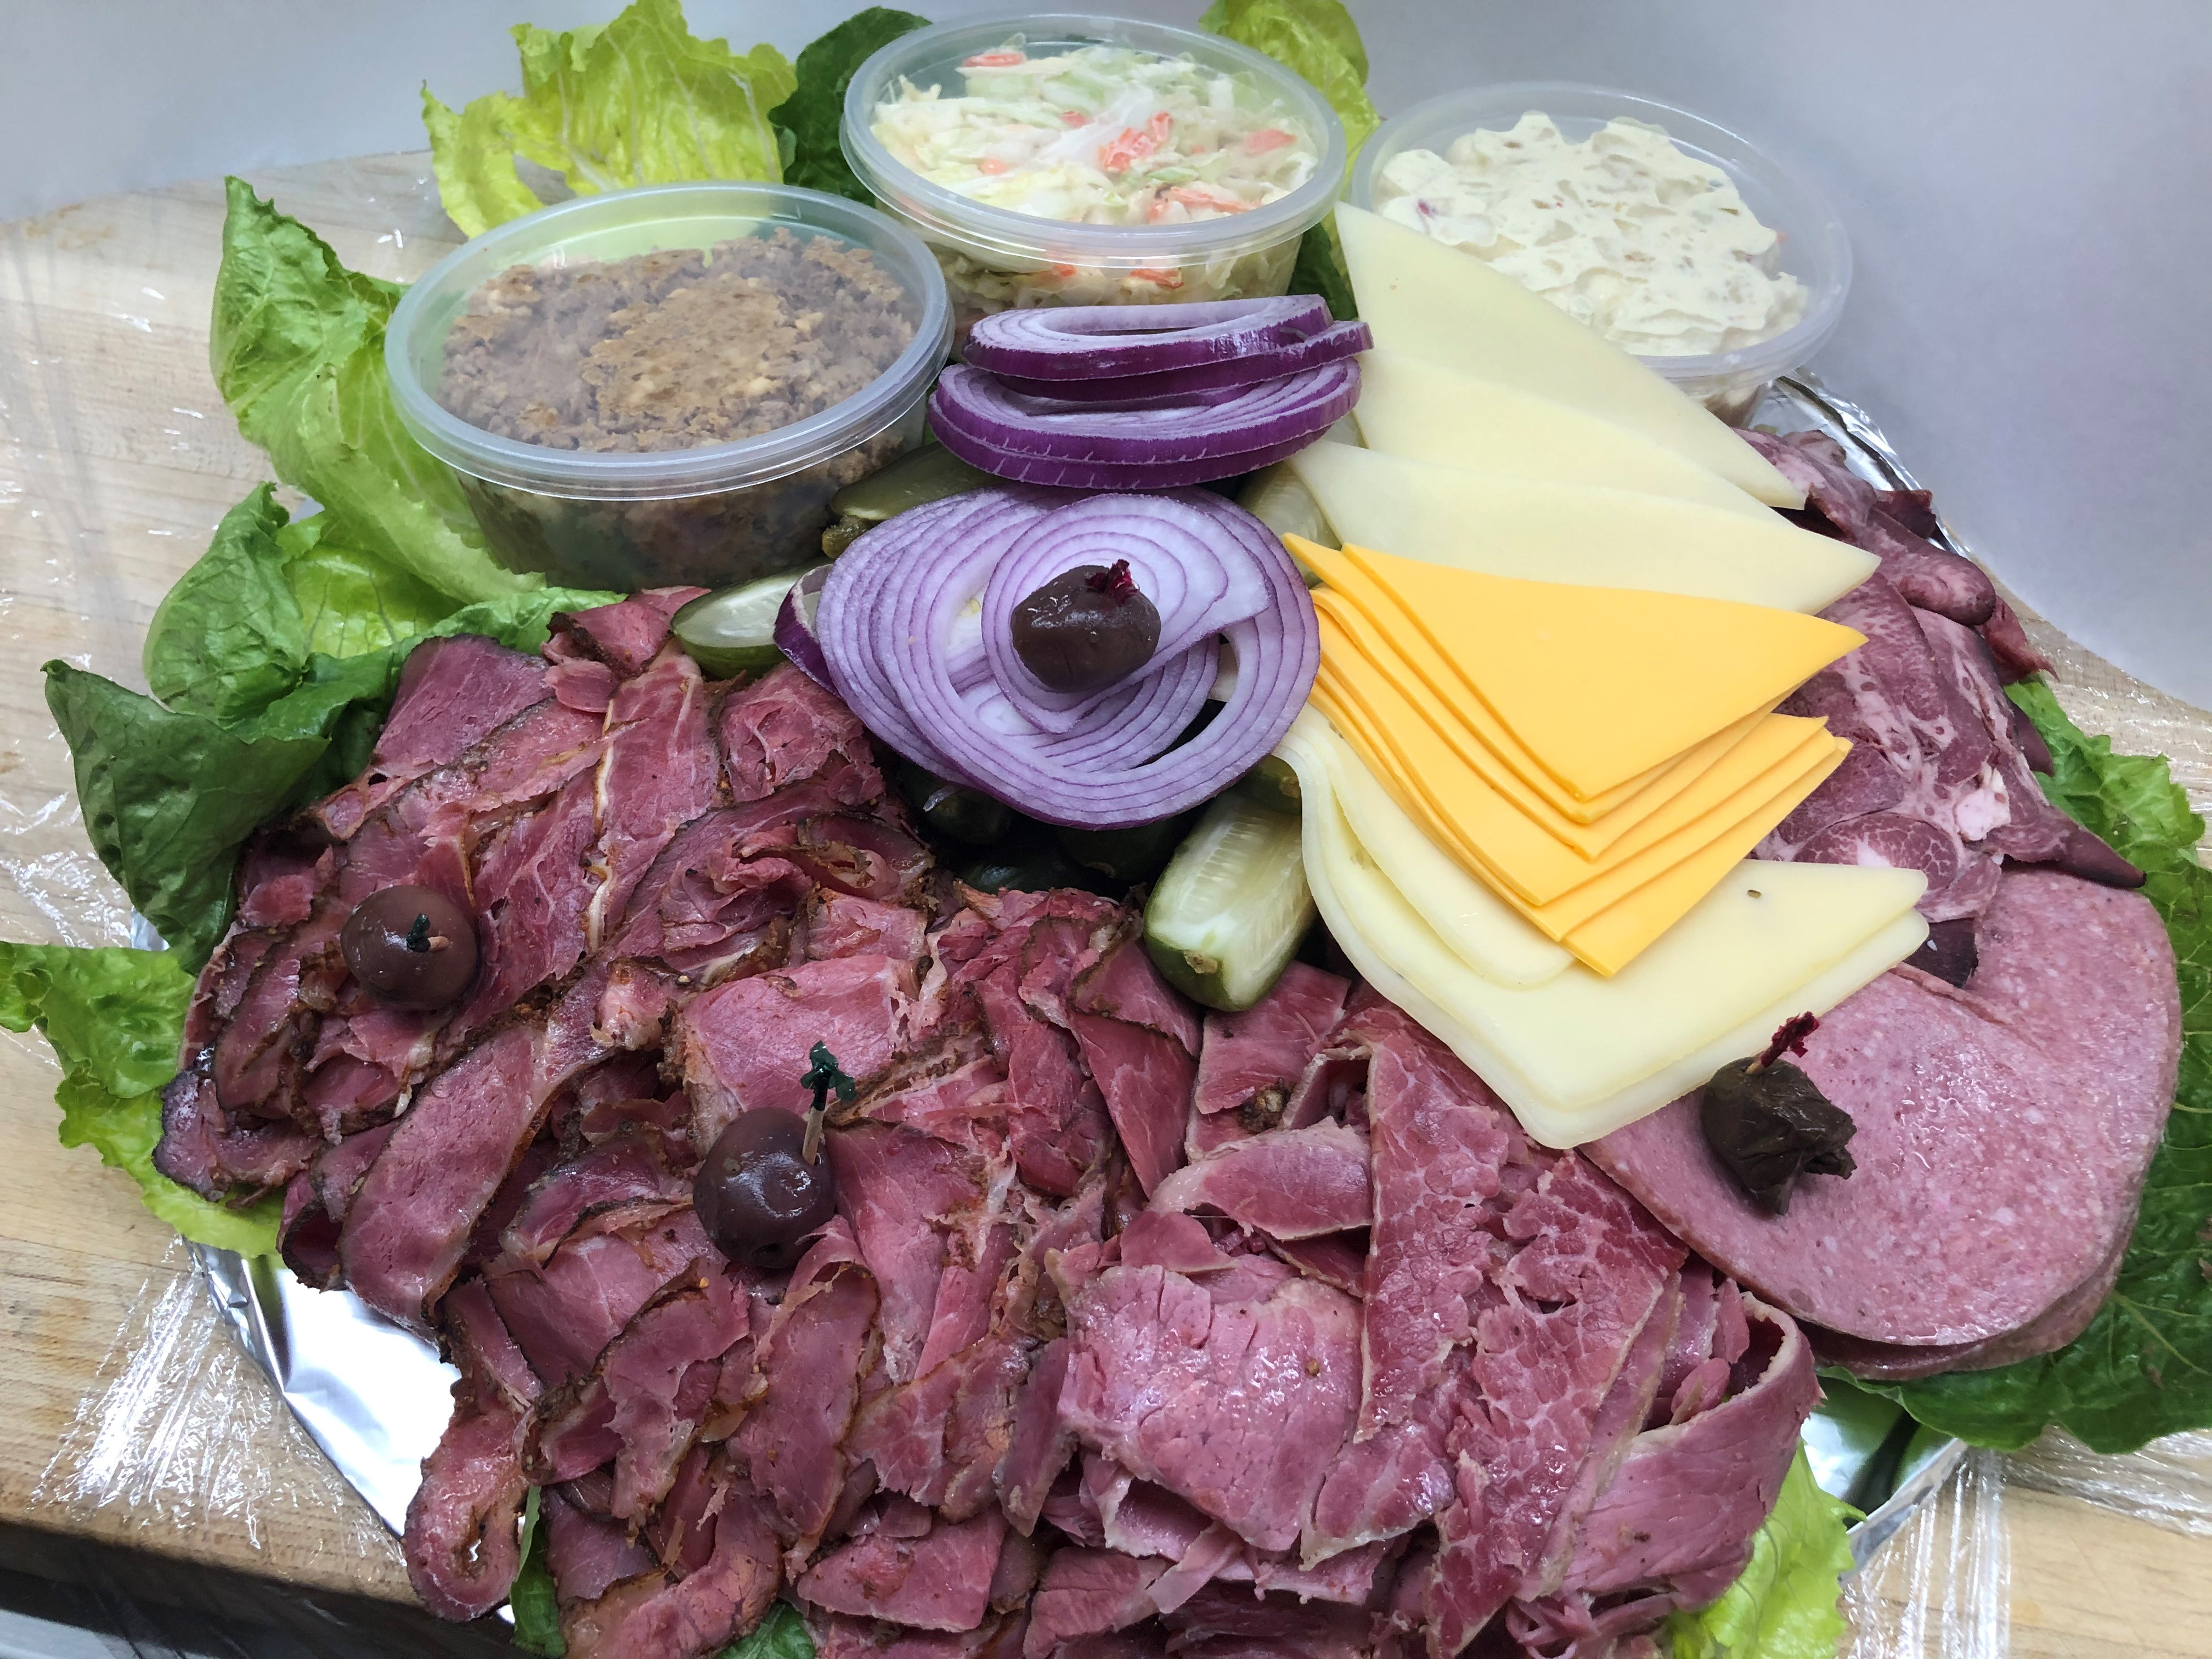 Catering with the Deli Feast. A beautiful ensemble of meats and cheese for feed an army. An OC classic.